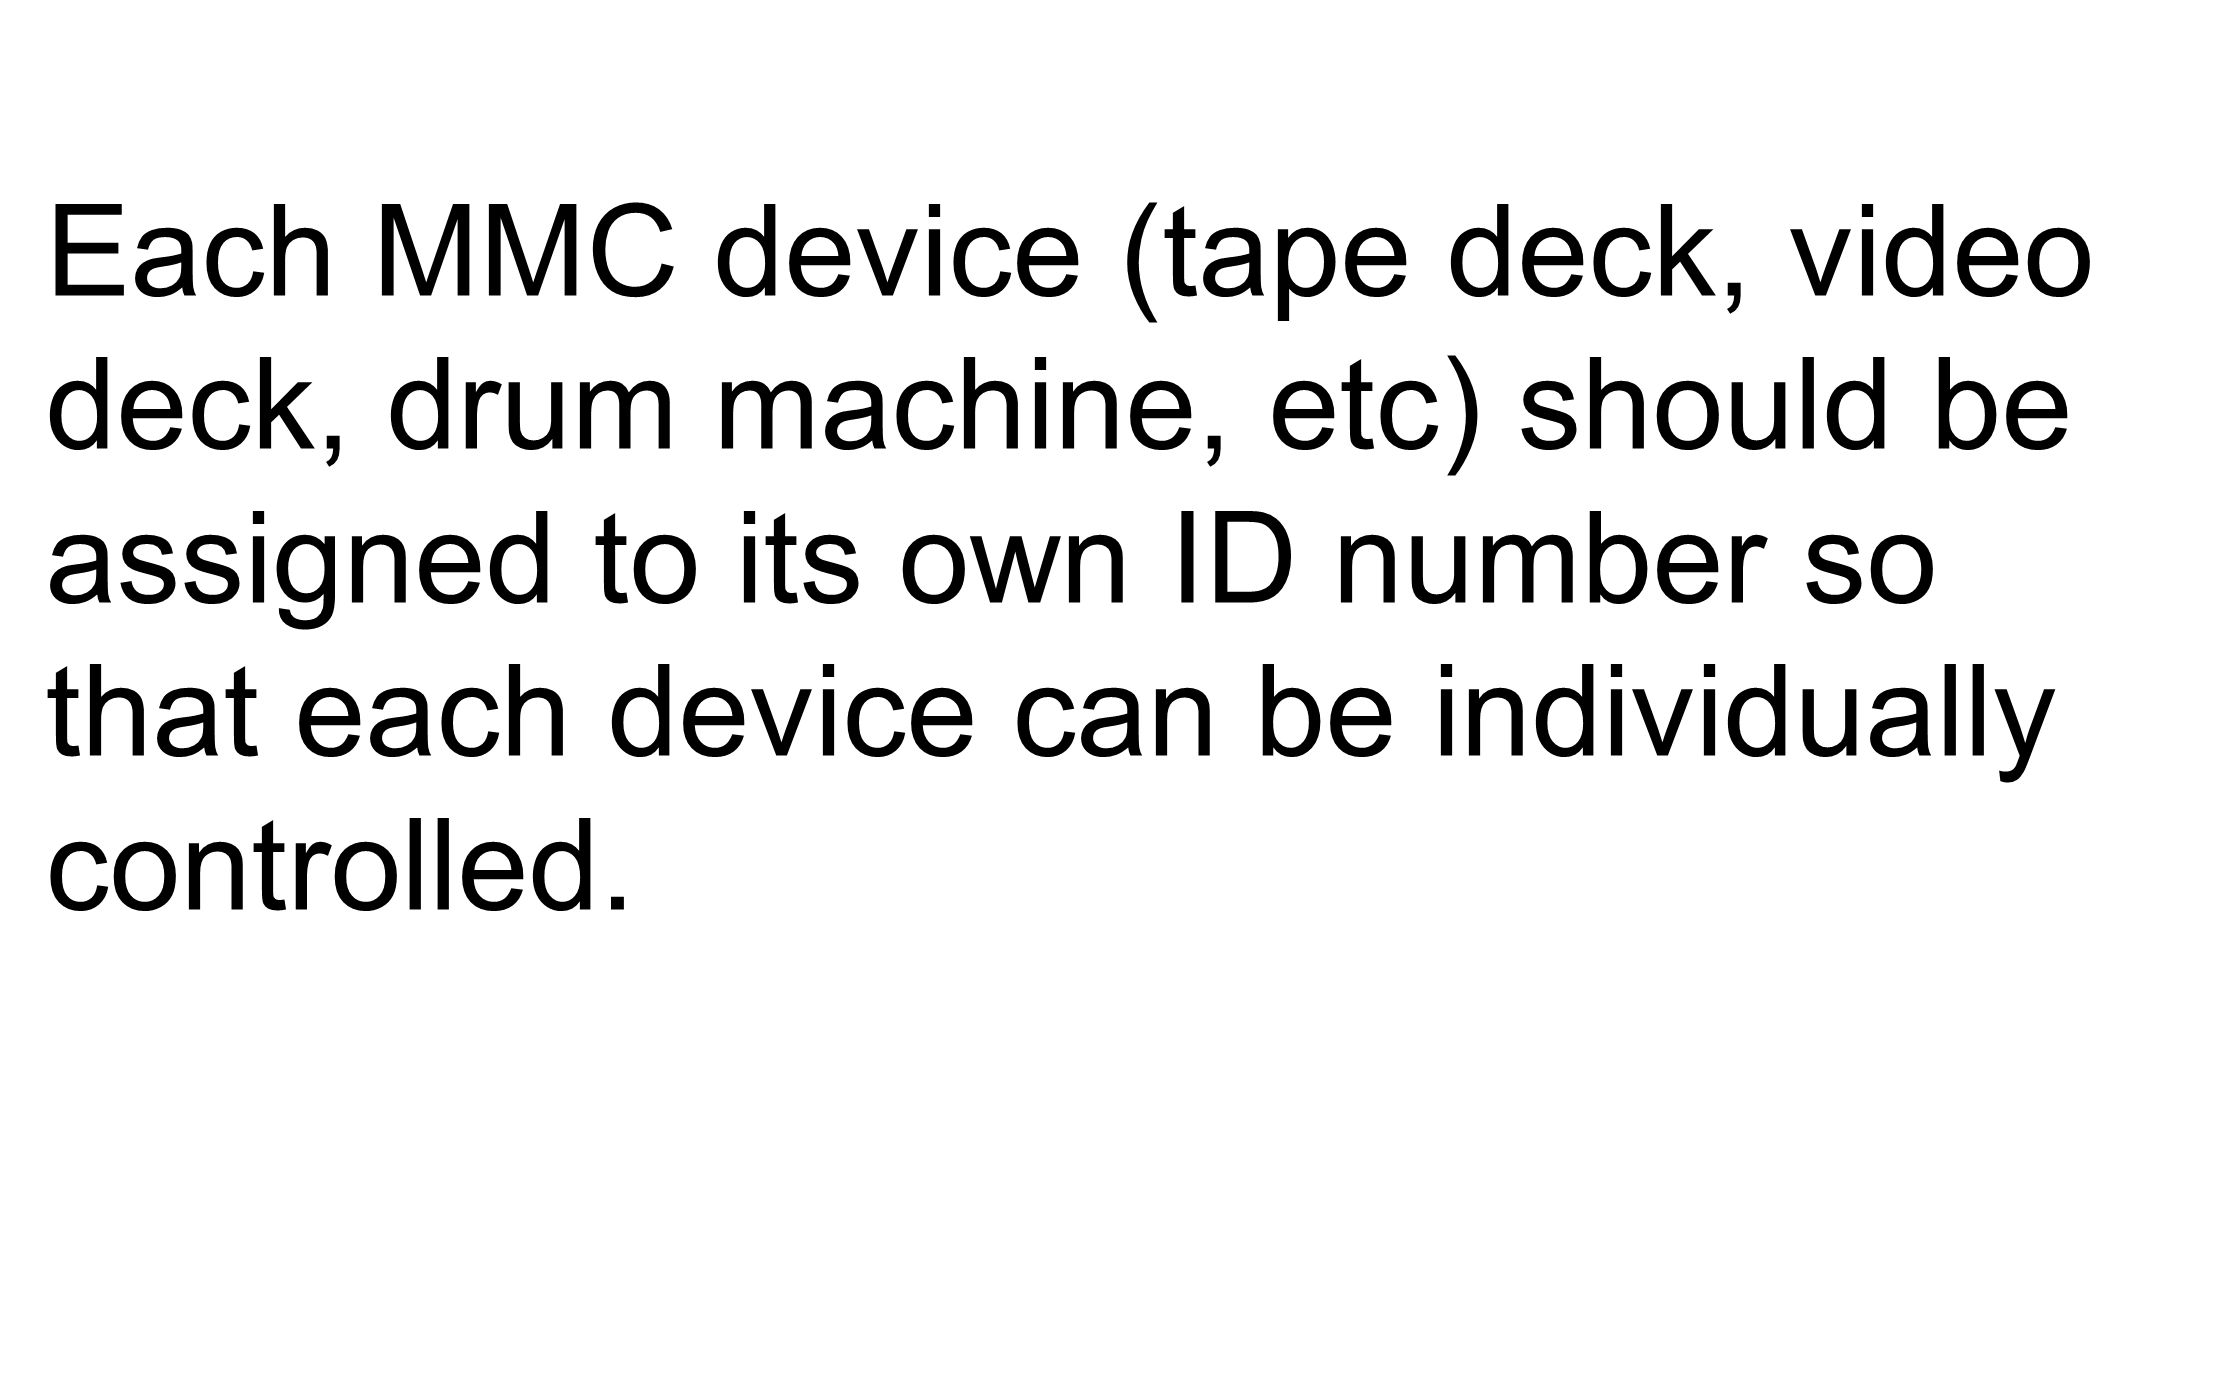 The sequencer can also have an ID so that a tape deck can control the record/playback of the sequencer.